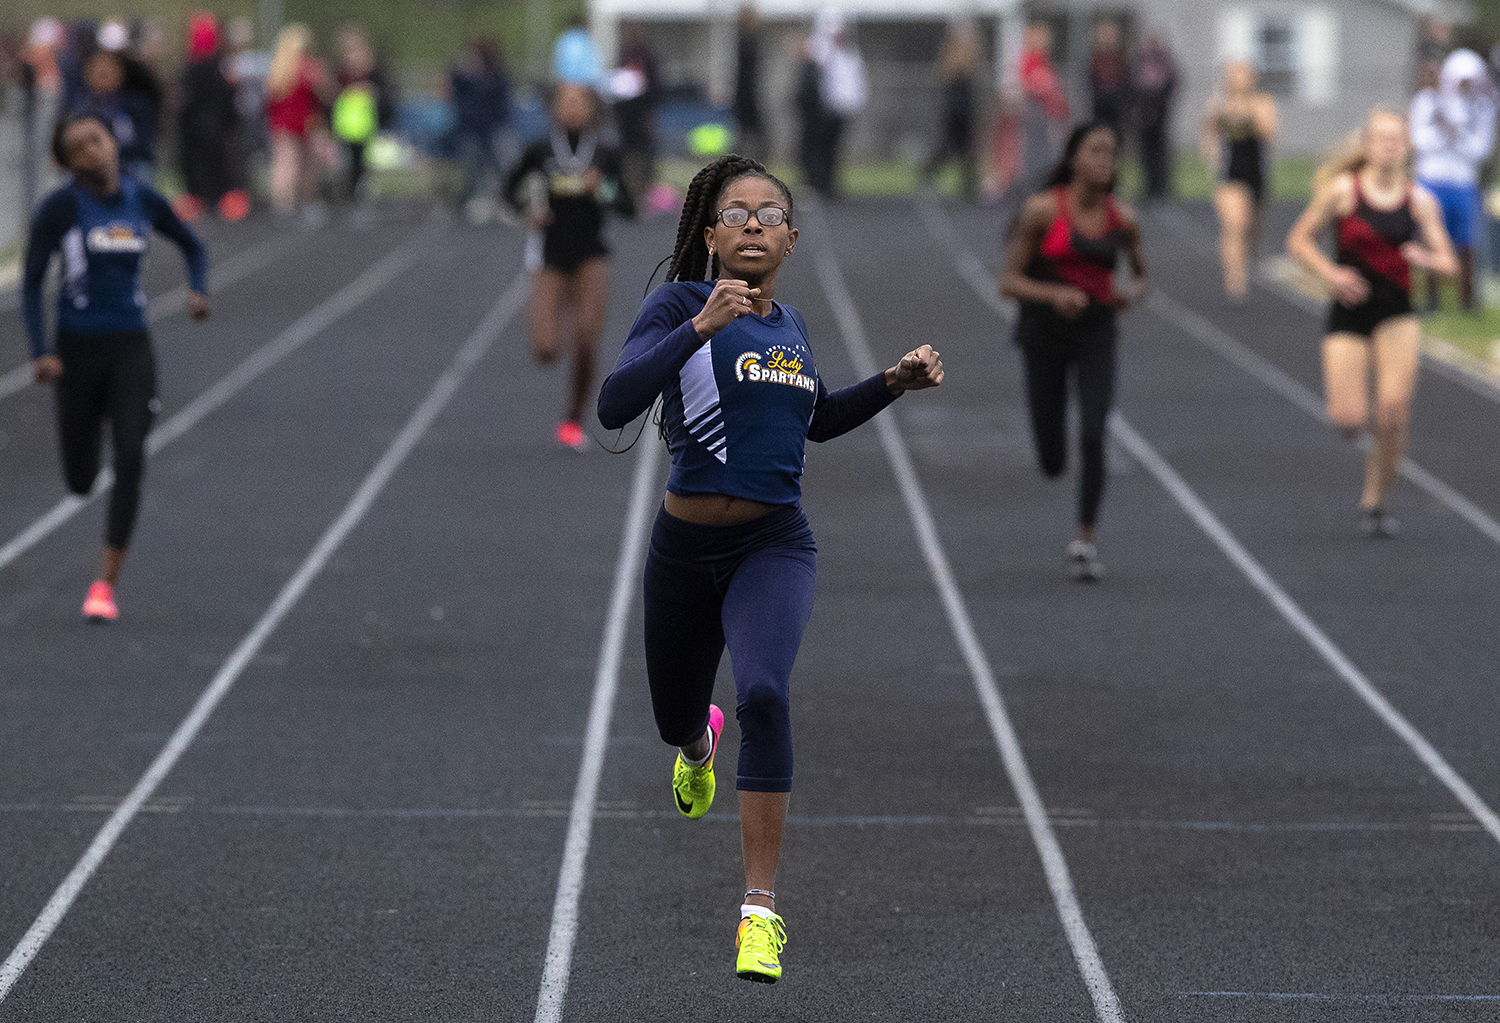 Southeast's Raven Moore is alone in first in the 400-meter dash with a time of 59.16 at the Girls City Track Meet Wednesday, April 24, 2019 at Southeast High School in Springfield, Ill. [Rich Saal/The State Journal-Register]